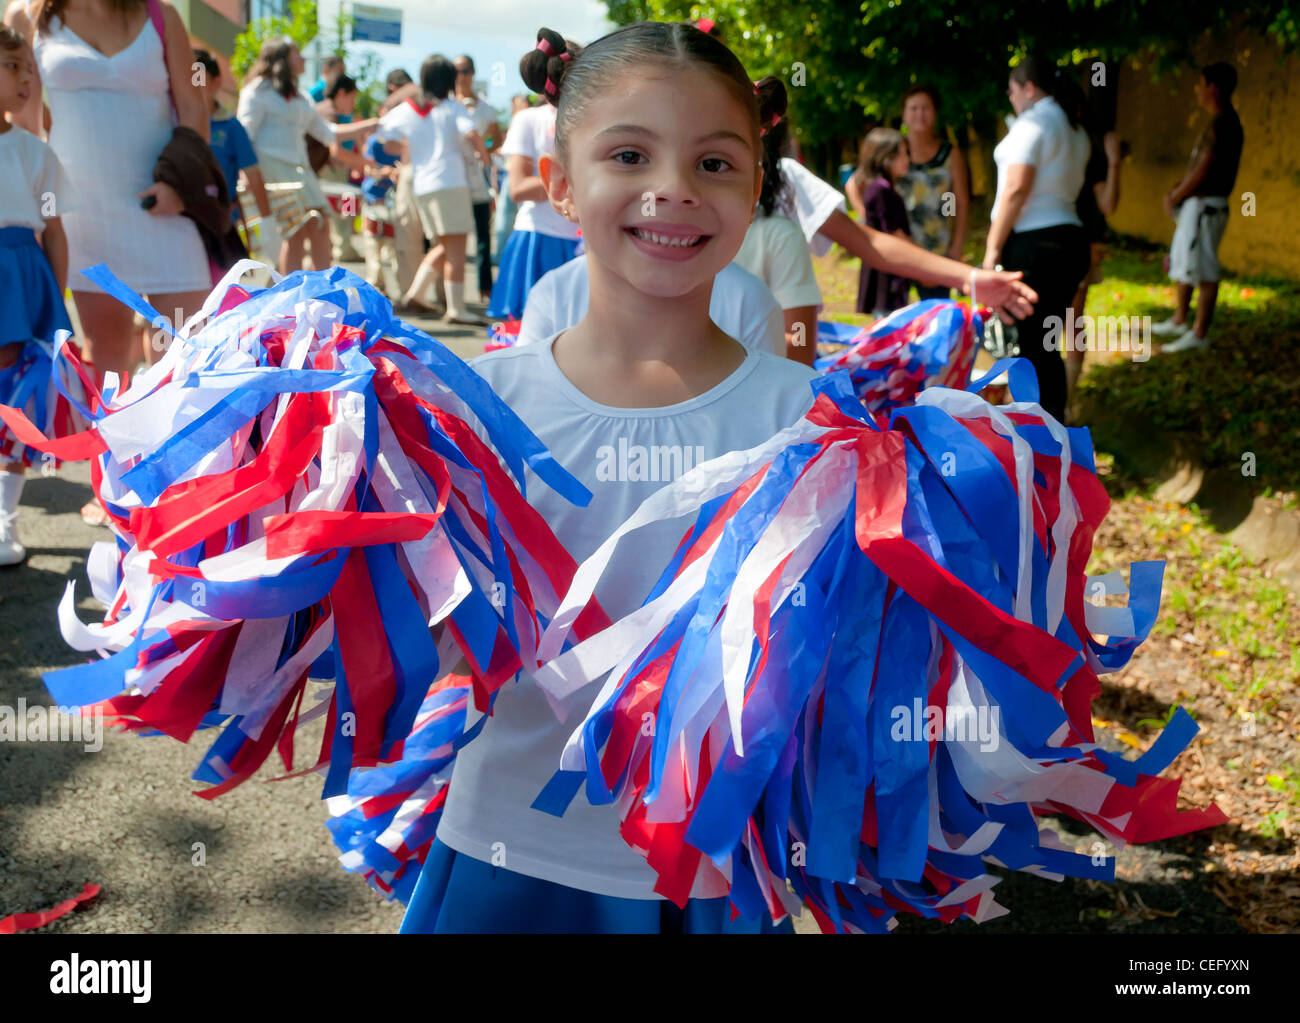 Independence day parade Costa Rica Central Valley - Stock Image